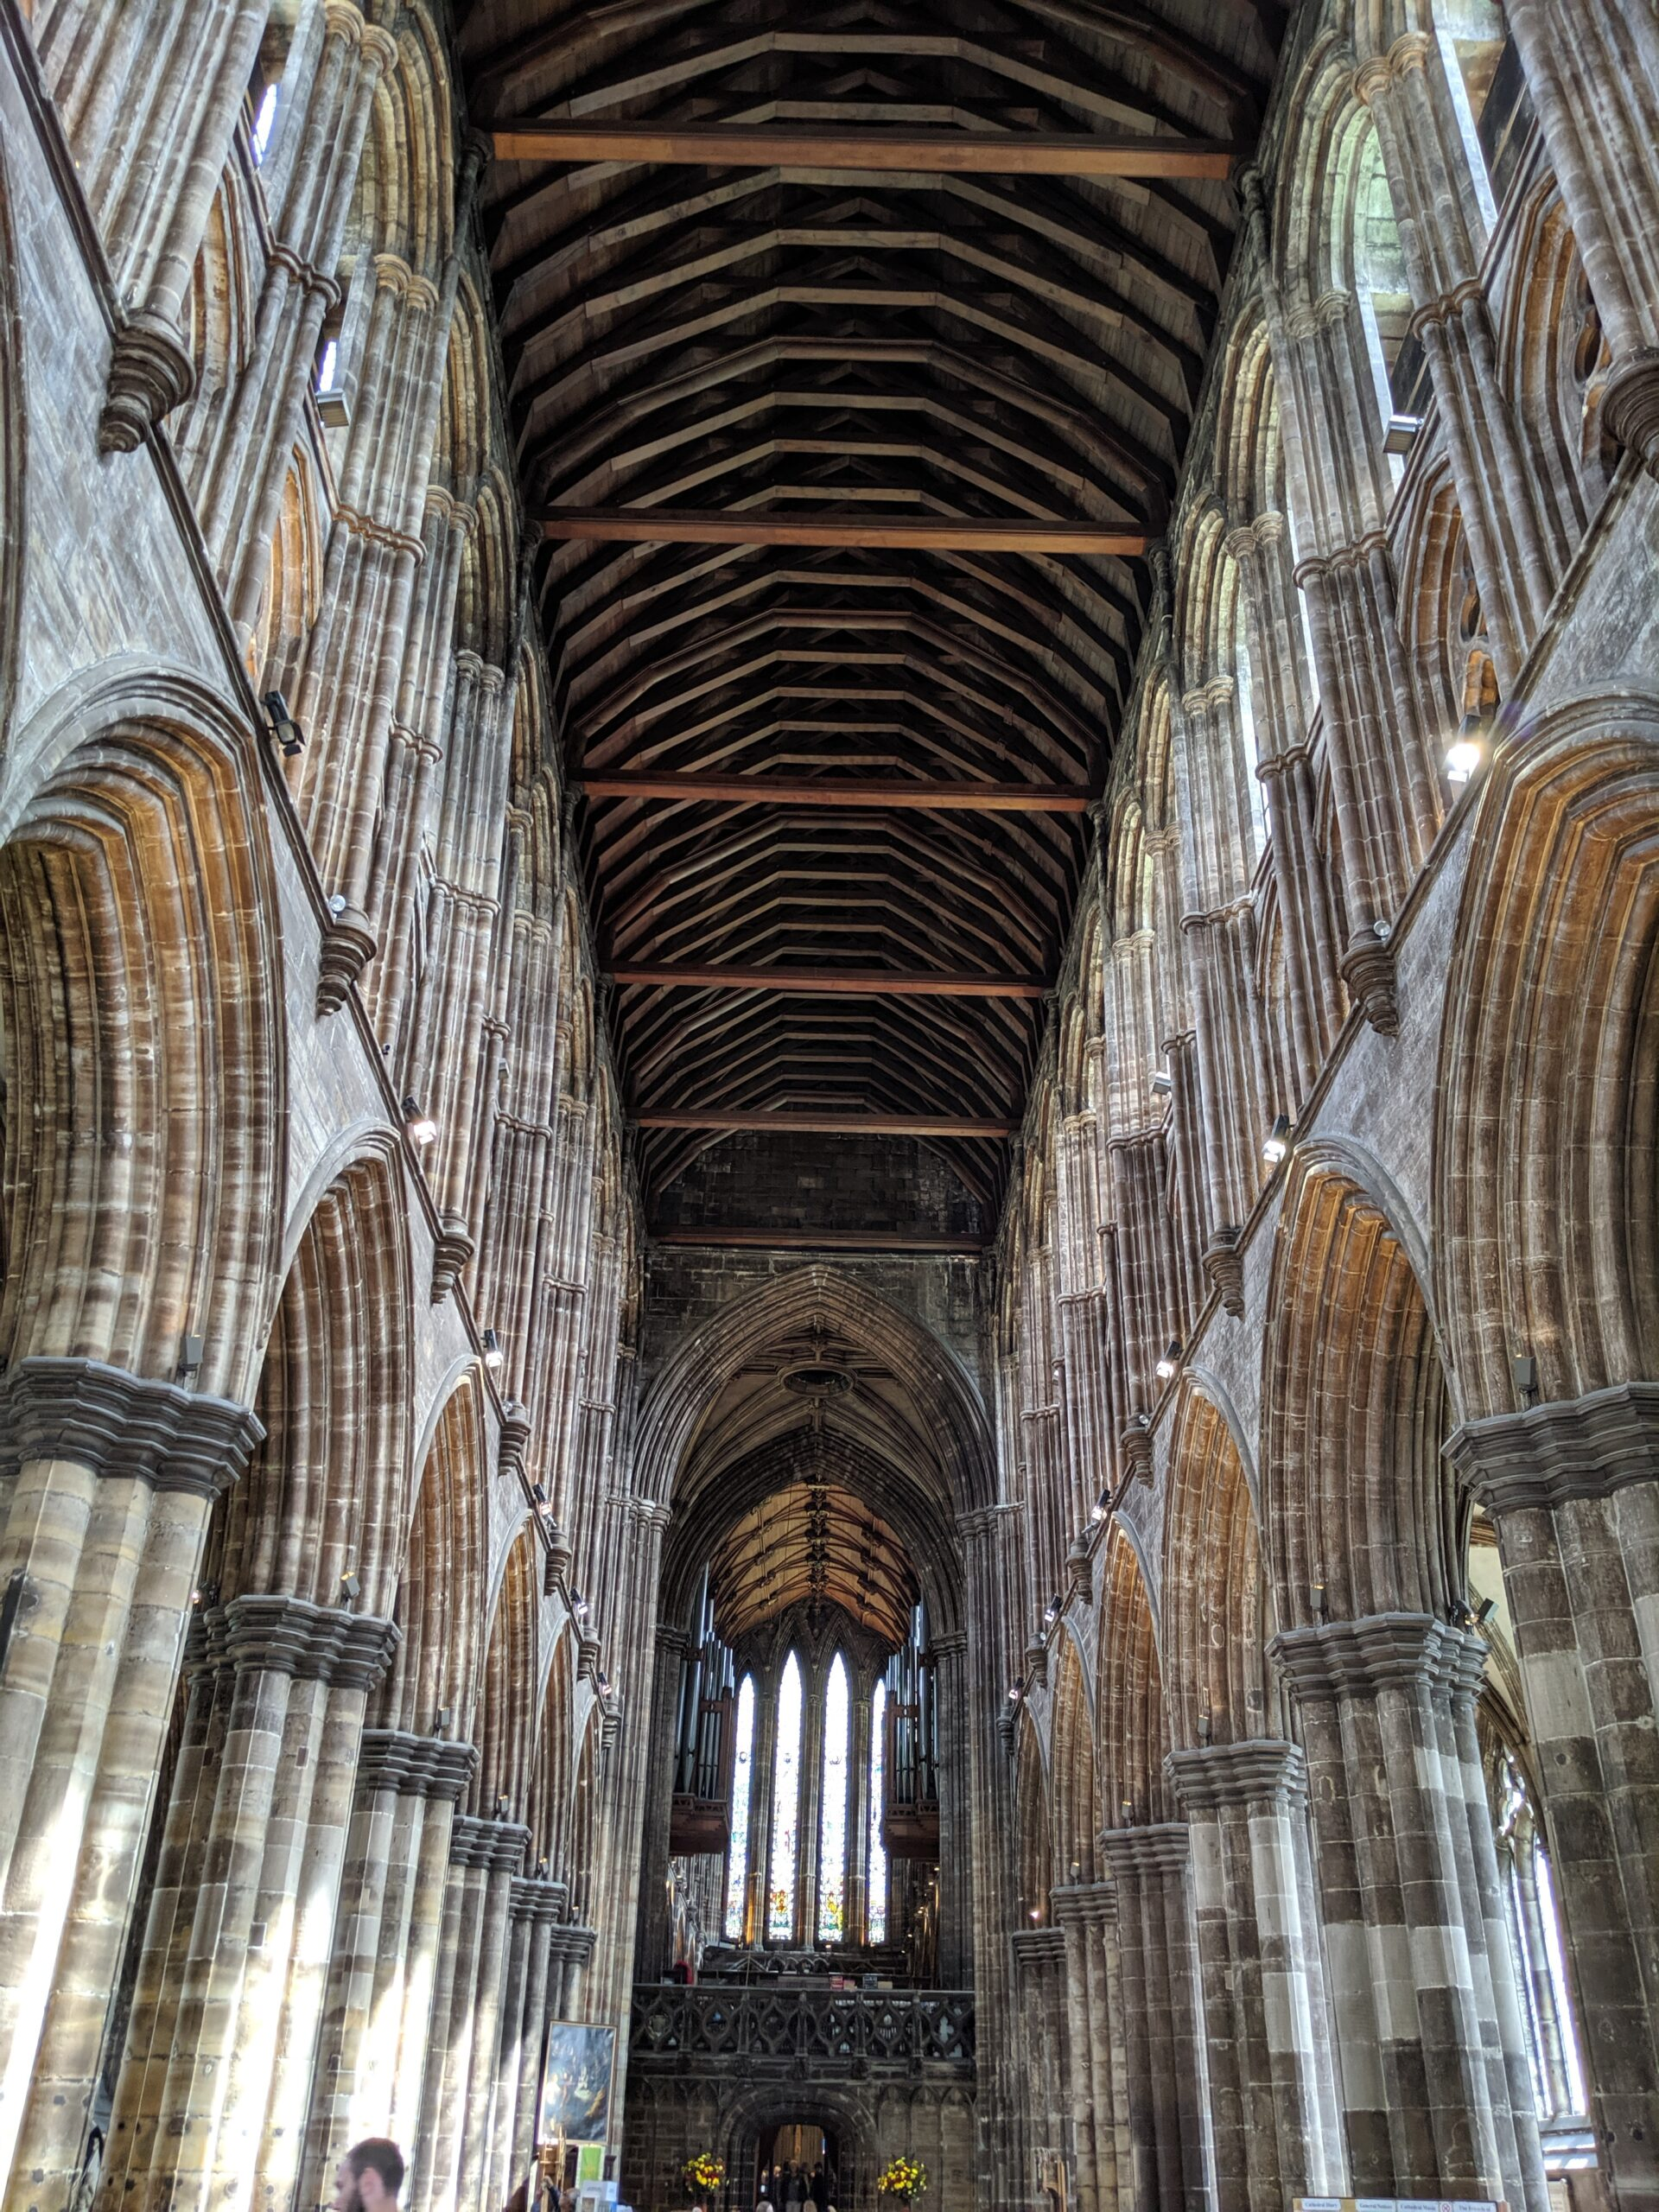 Tall stone arches of the interior of Glasgow Cathedral